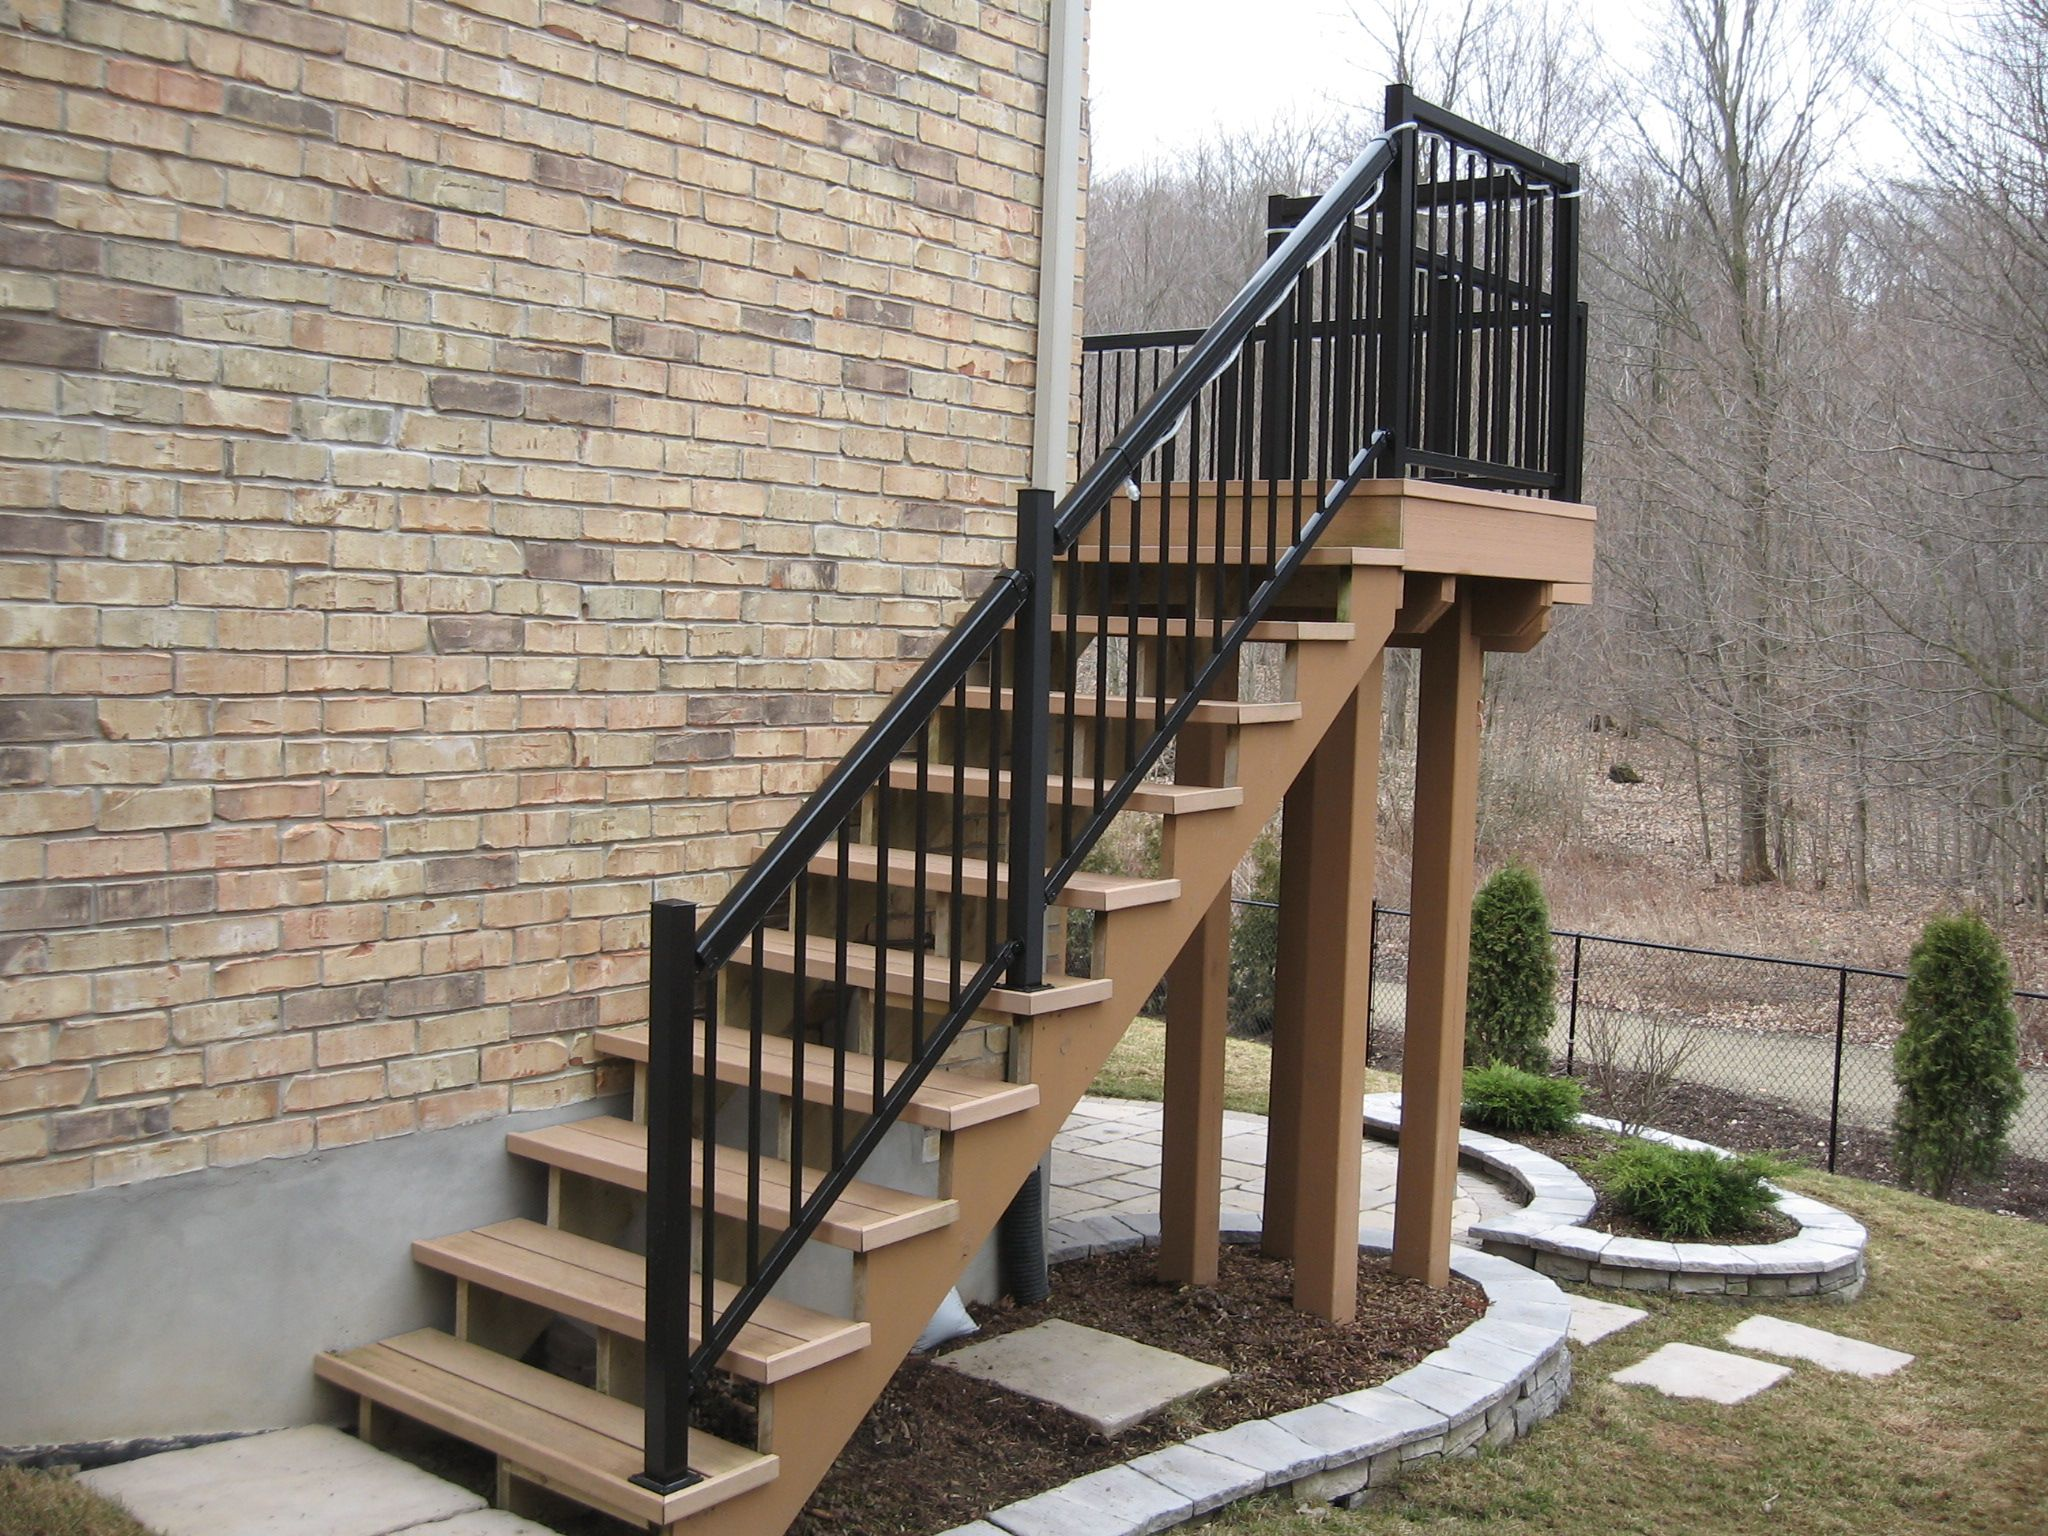 Delightful ProBuilt Aluminum Railing Stairs With Narrow Pickets Stairs, Staircases,  Ladder, Stairway, Stairways